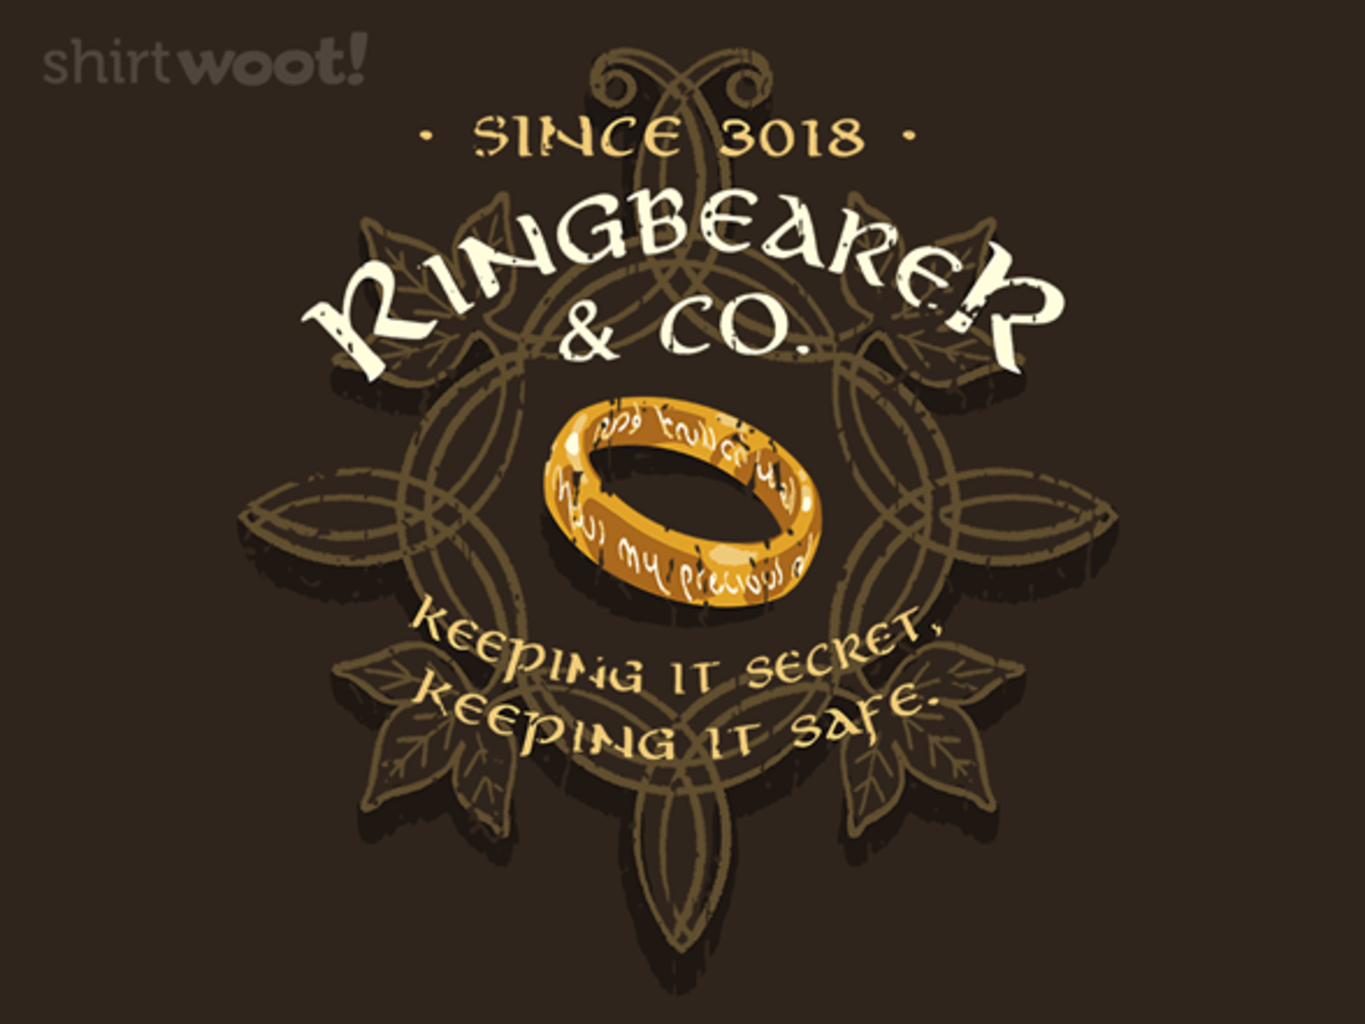 Woot!: Ringbearer & Co.